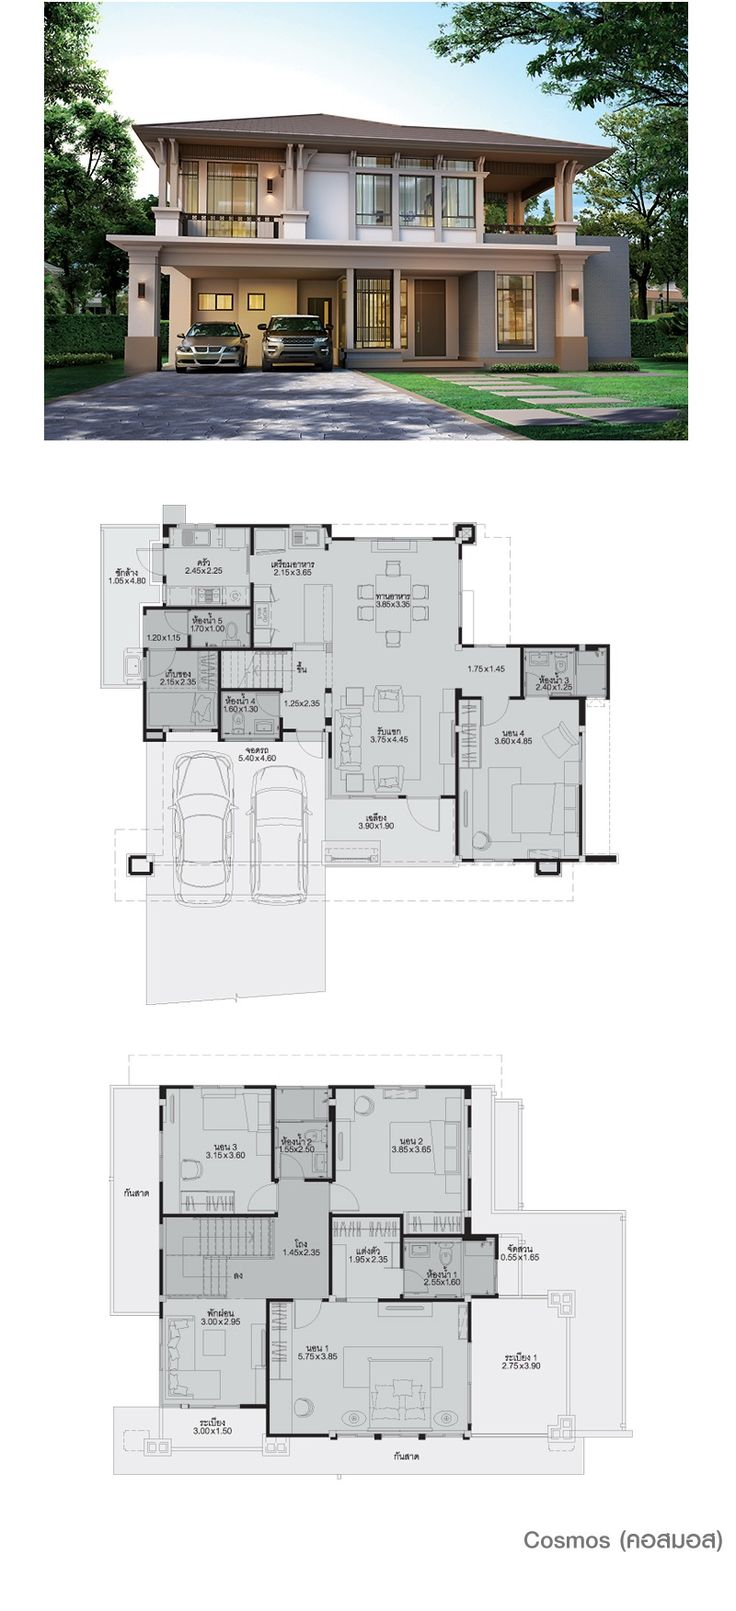 22 best full house plan images on pinterest architecture house cosmos binacosmoshouse designfloor planshouse